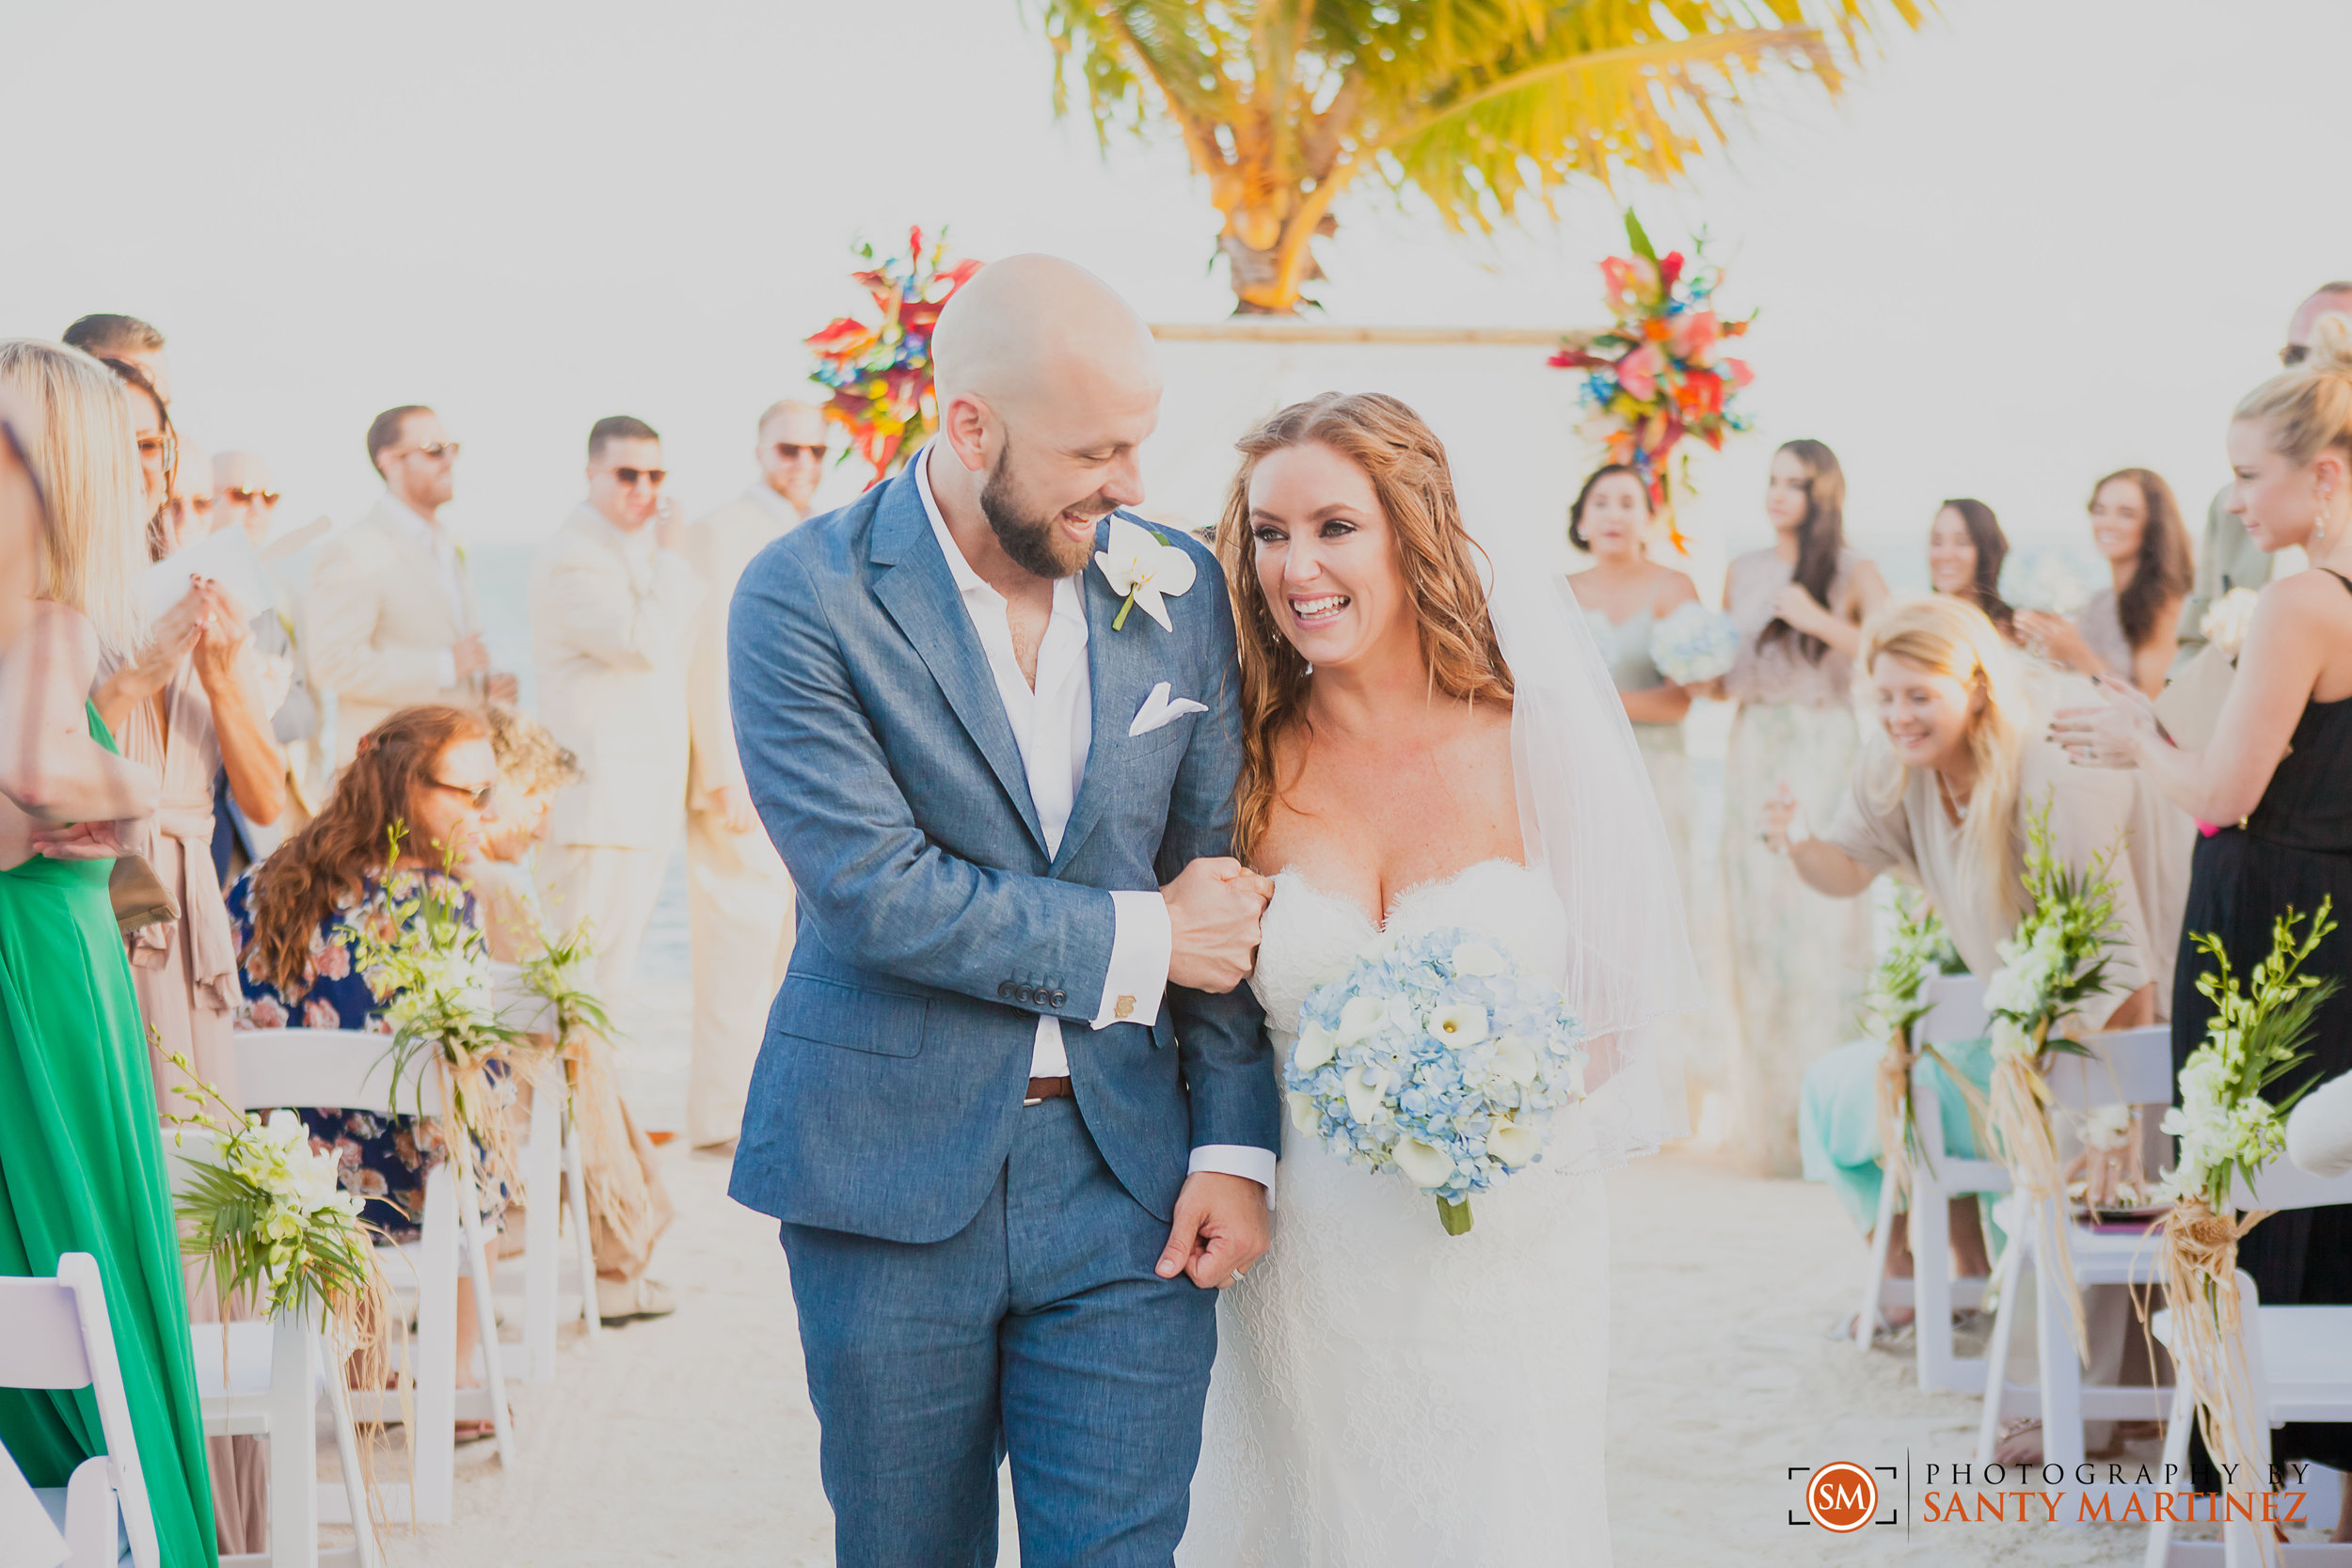 Postcard Inn Islamorada Wedding - Photography by Santy Martinez--19.jpg